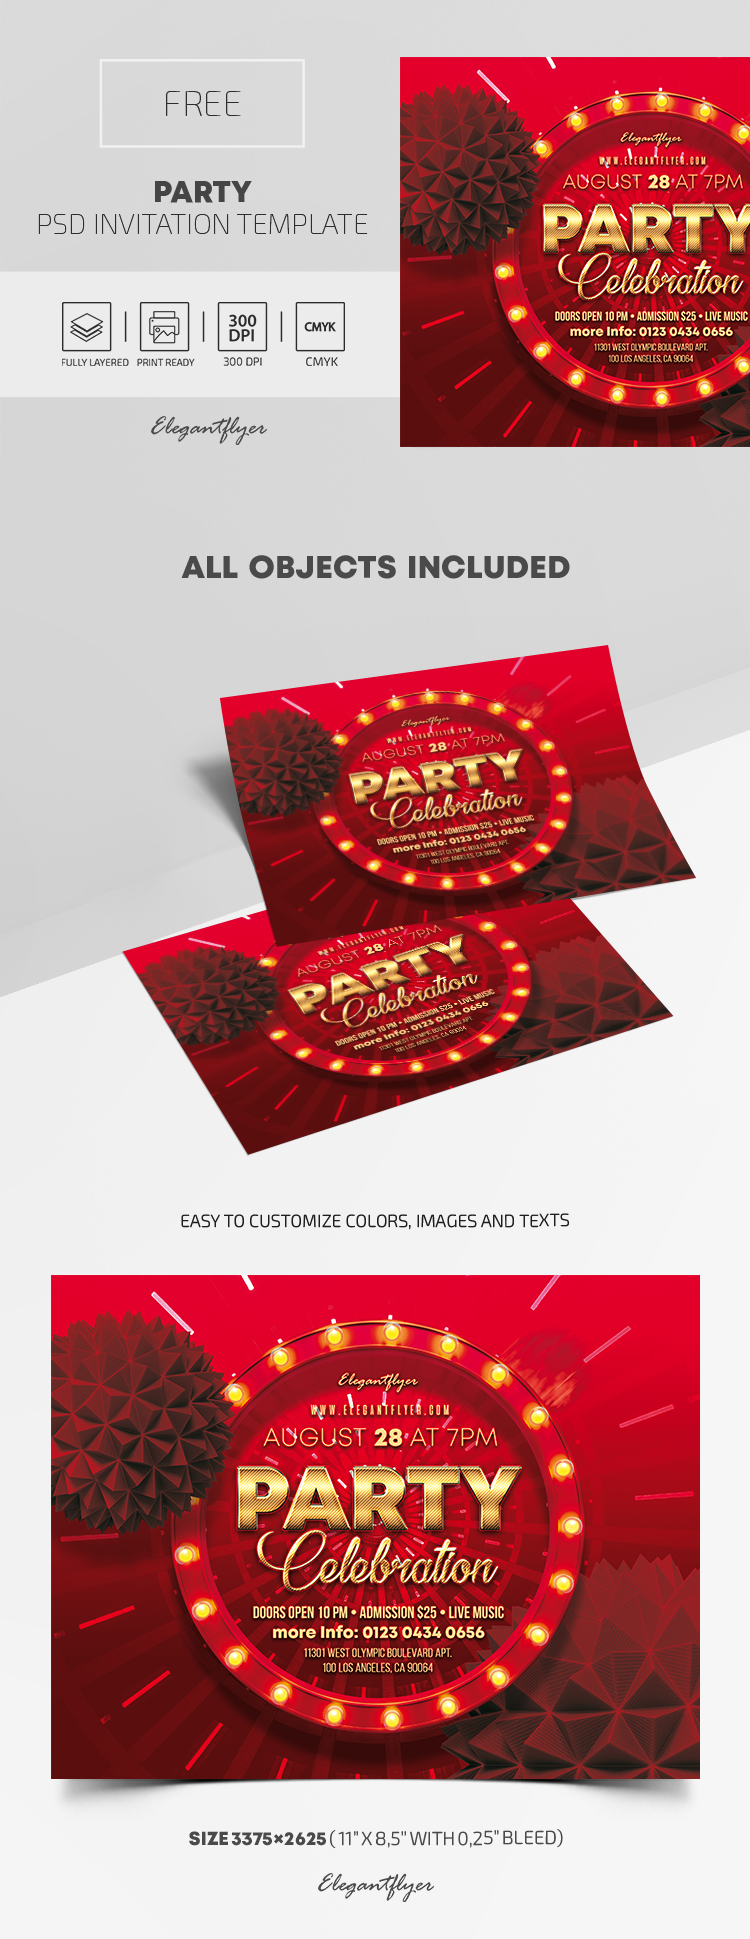 Free Party Invitation Template in PSD